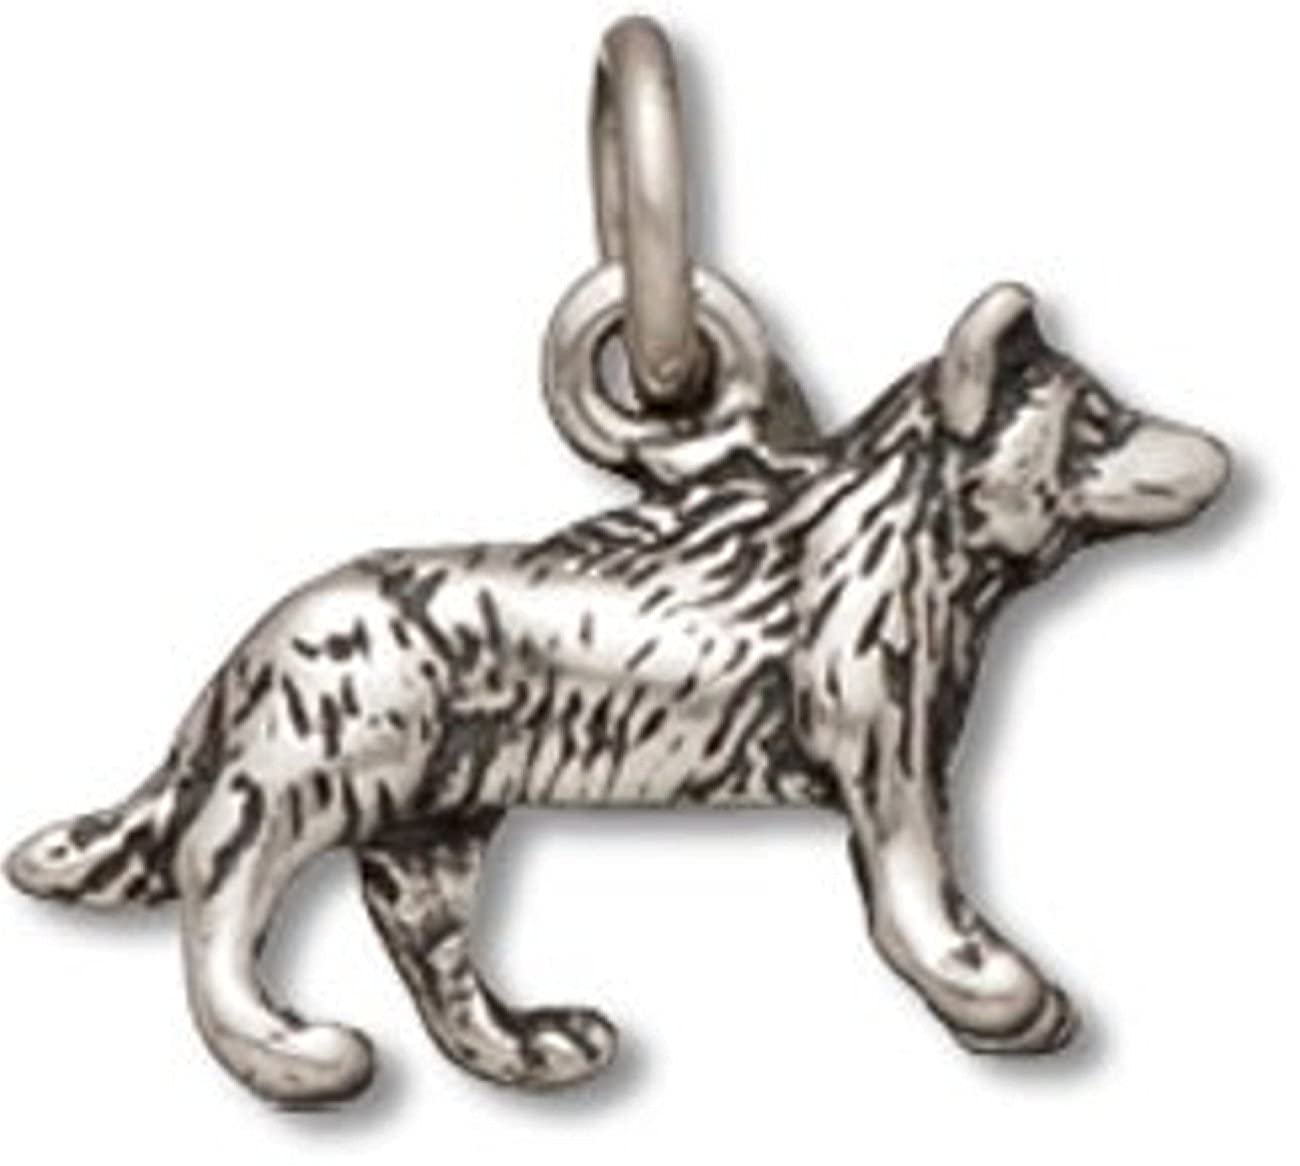 Sterling Silver 7 4.5mm Charm Bracelet With Attached 3D Small Wolf Or Pet Dog Charm